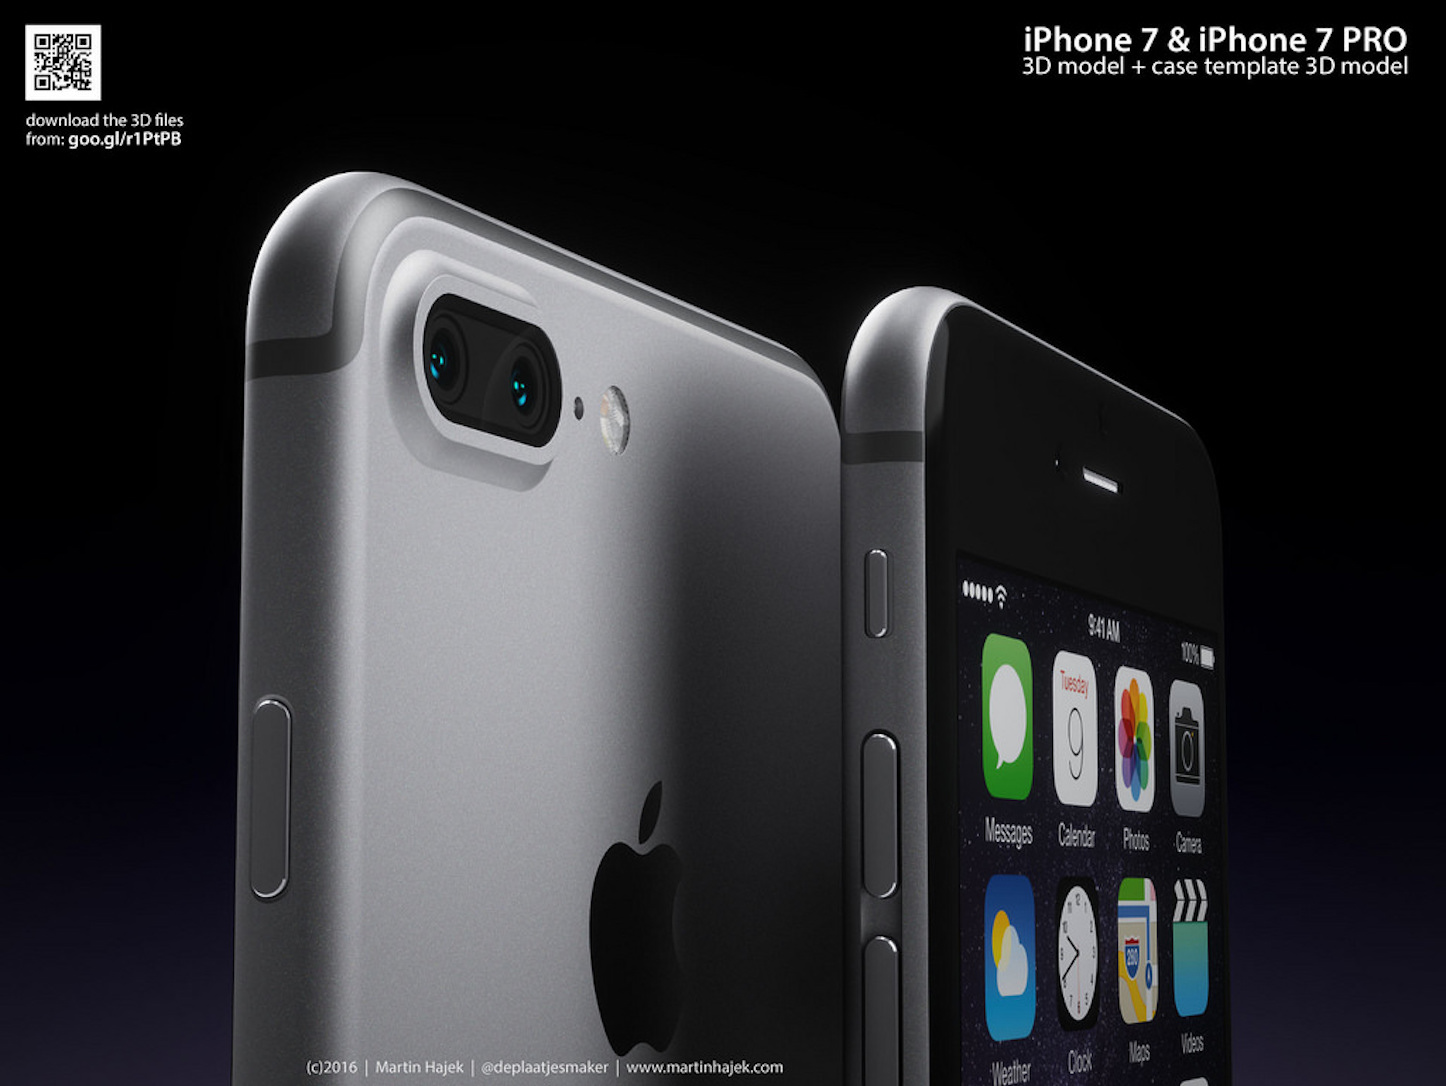 Iphone 7 pro concept image